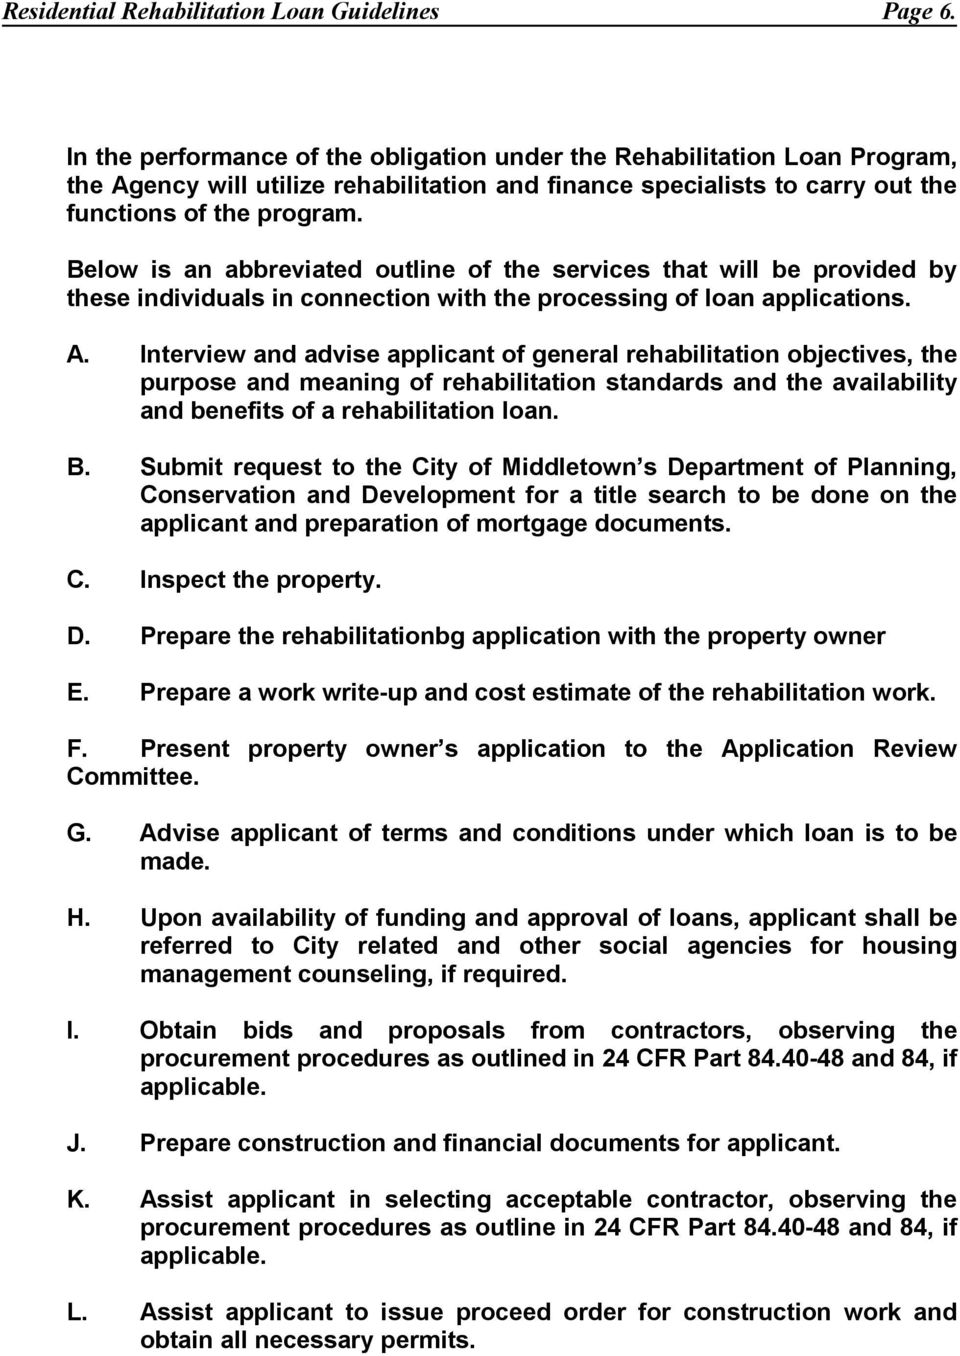 Below is an abbreviated outline of the services that will be provided by these individuals in connection with the processing of loan applications. A.